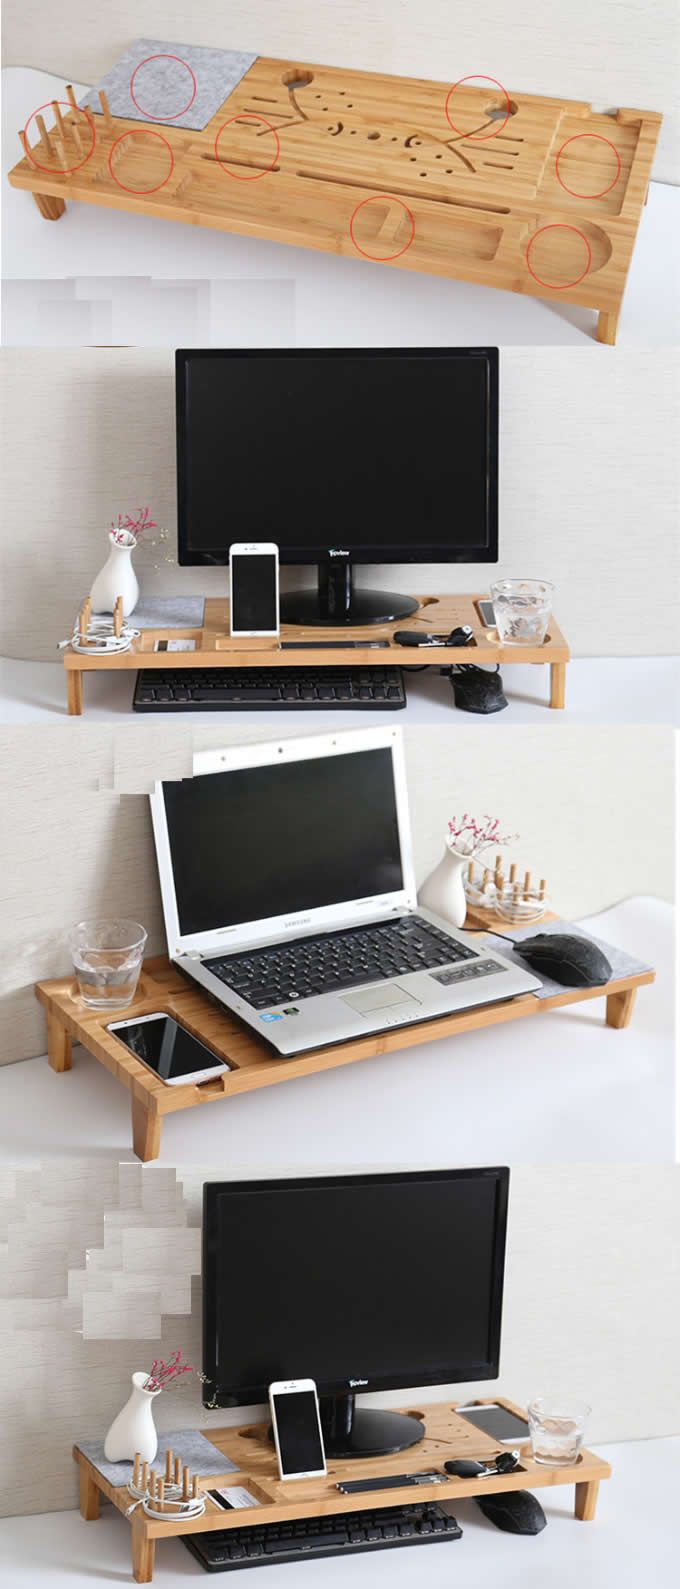 Wood Monitor Imac Stand Stationery Office Desk Organizer Pen Pencil Holder Ipad Cell Phone Cha Desk Organization Diy Desk Organization Office Desk Organization